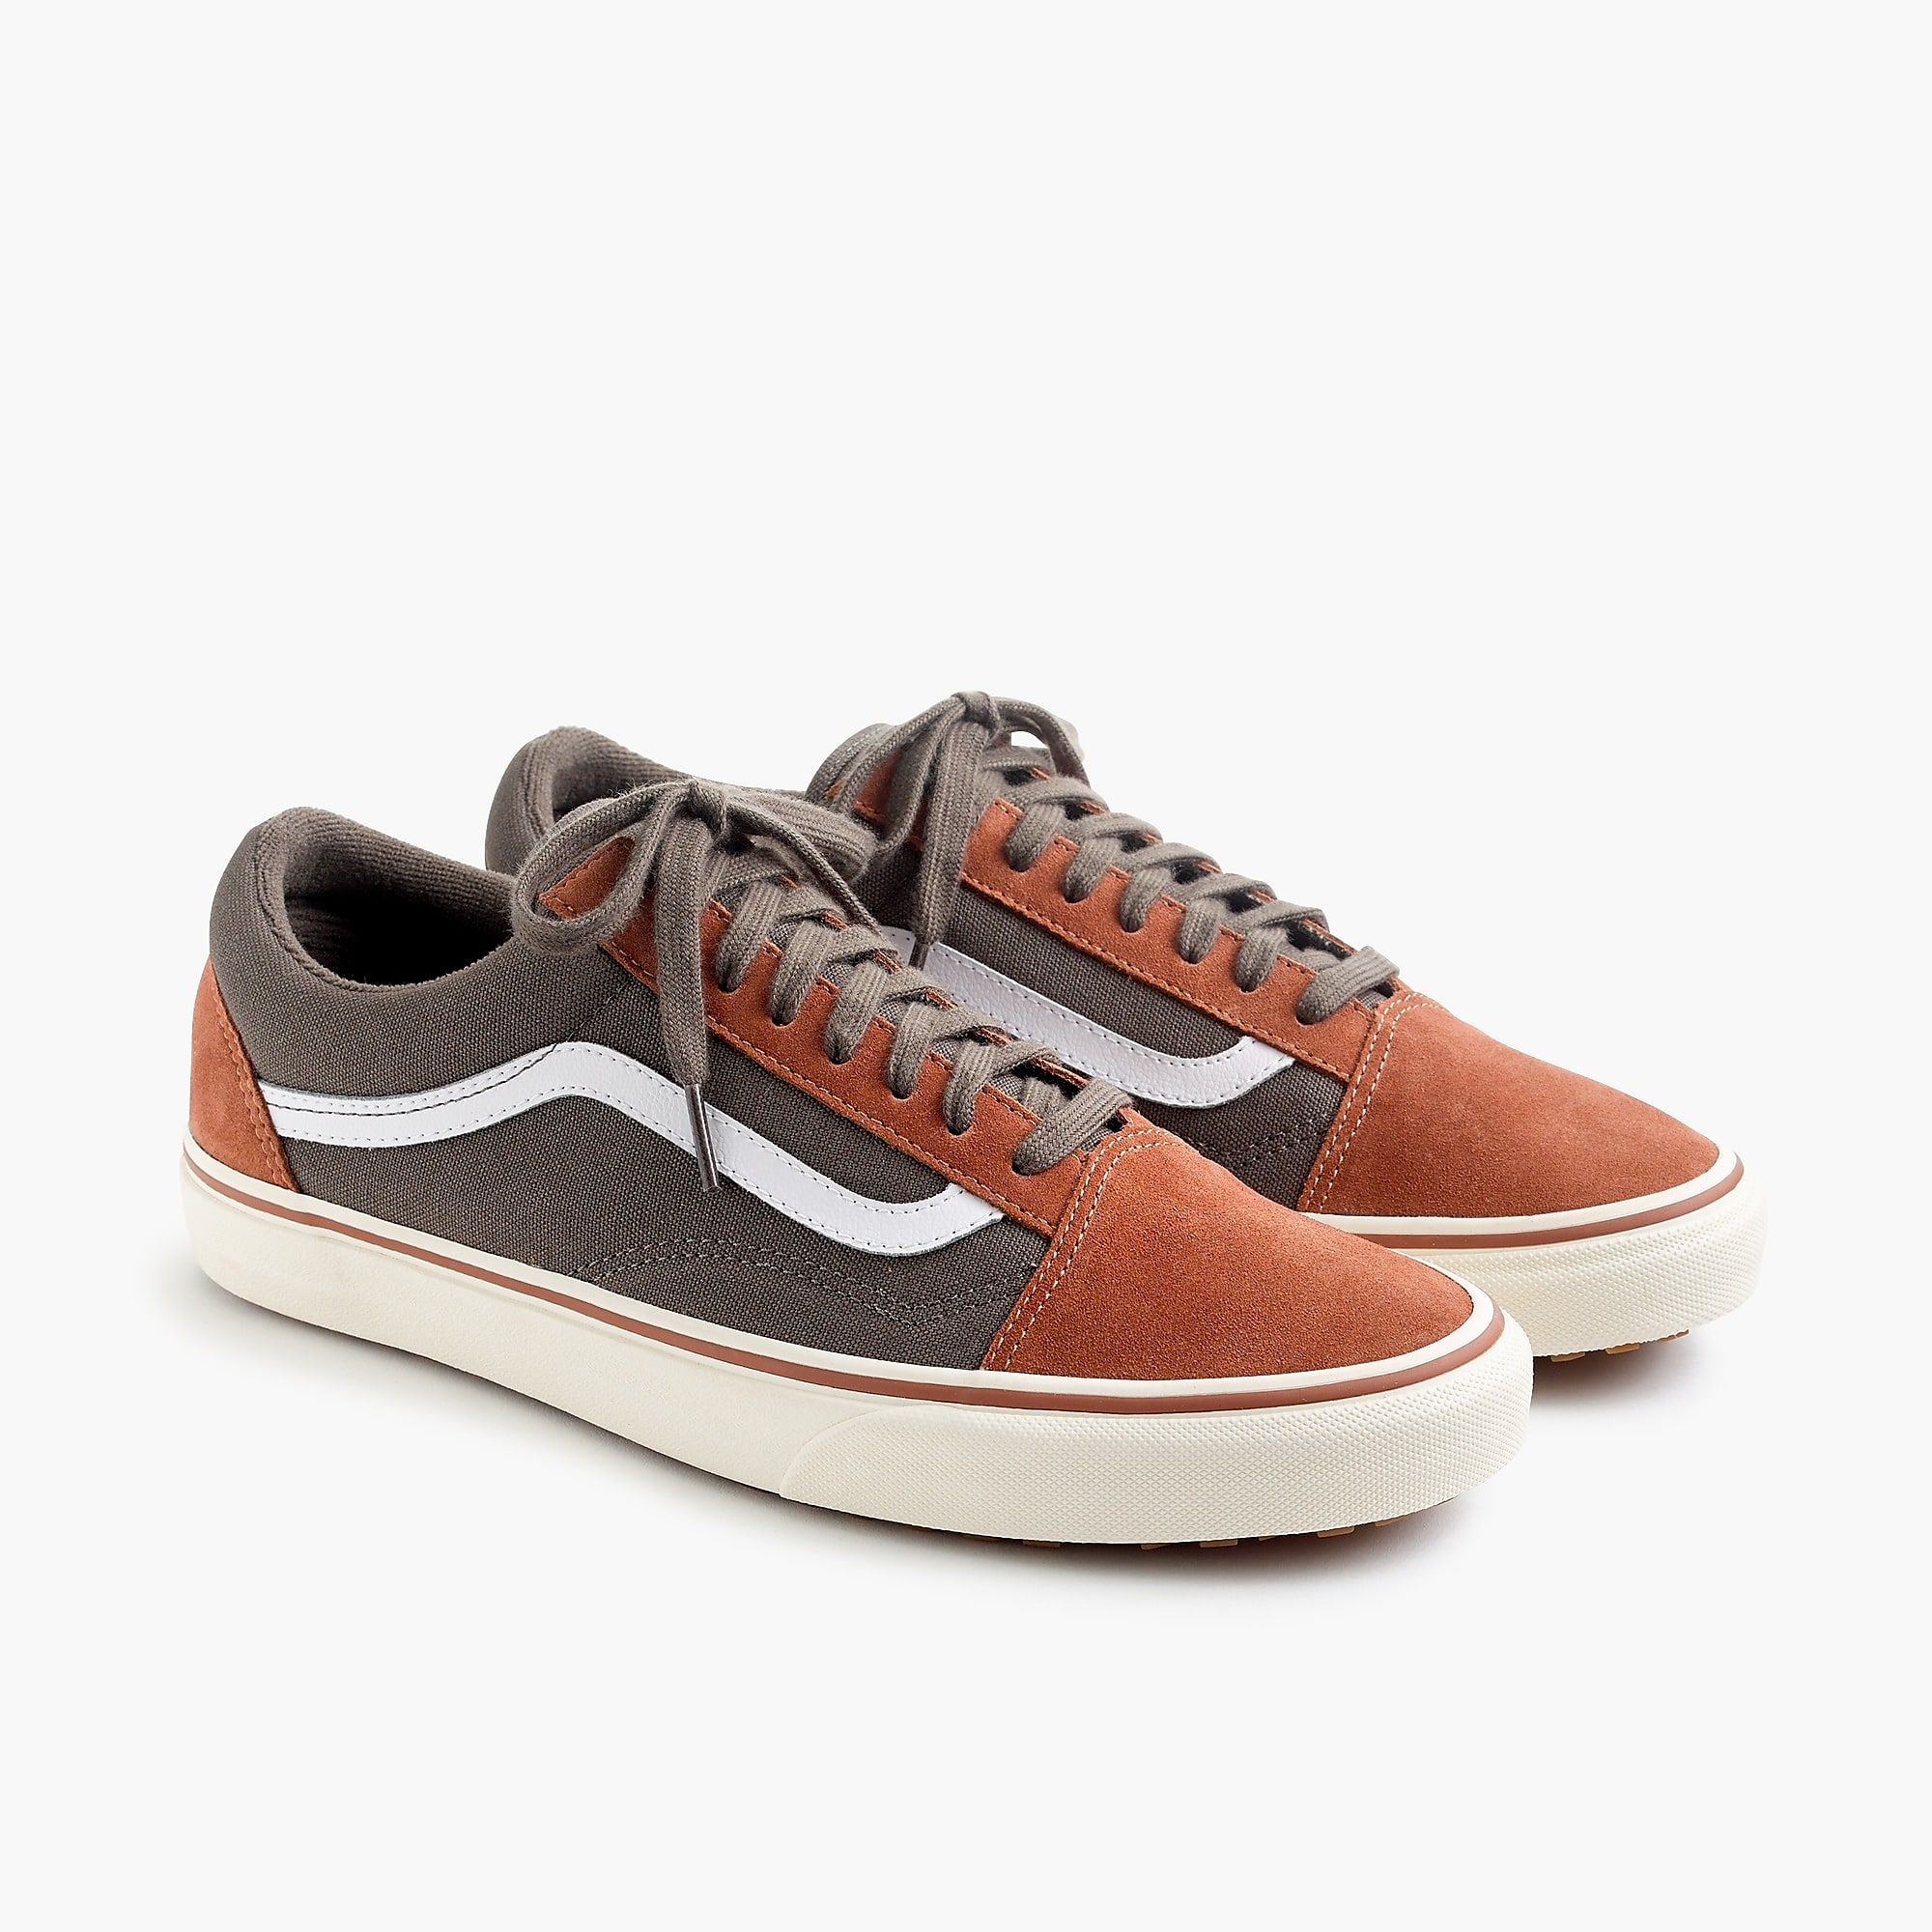 da7a5f74ef30 J.Crew X Vans® Old Skool MTE sneakers in washed canvas